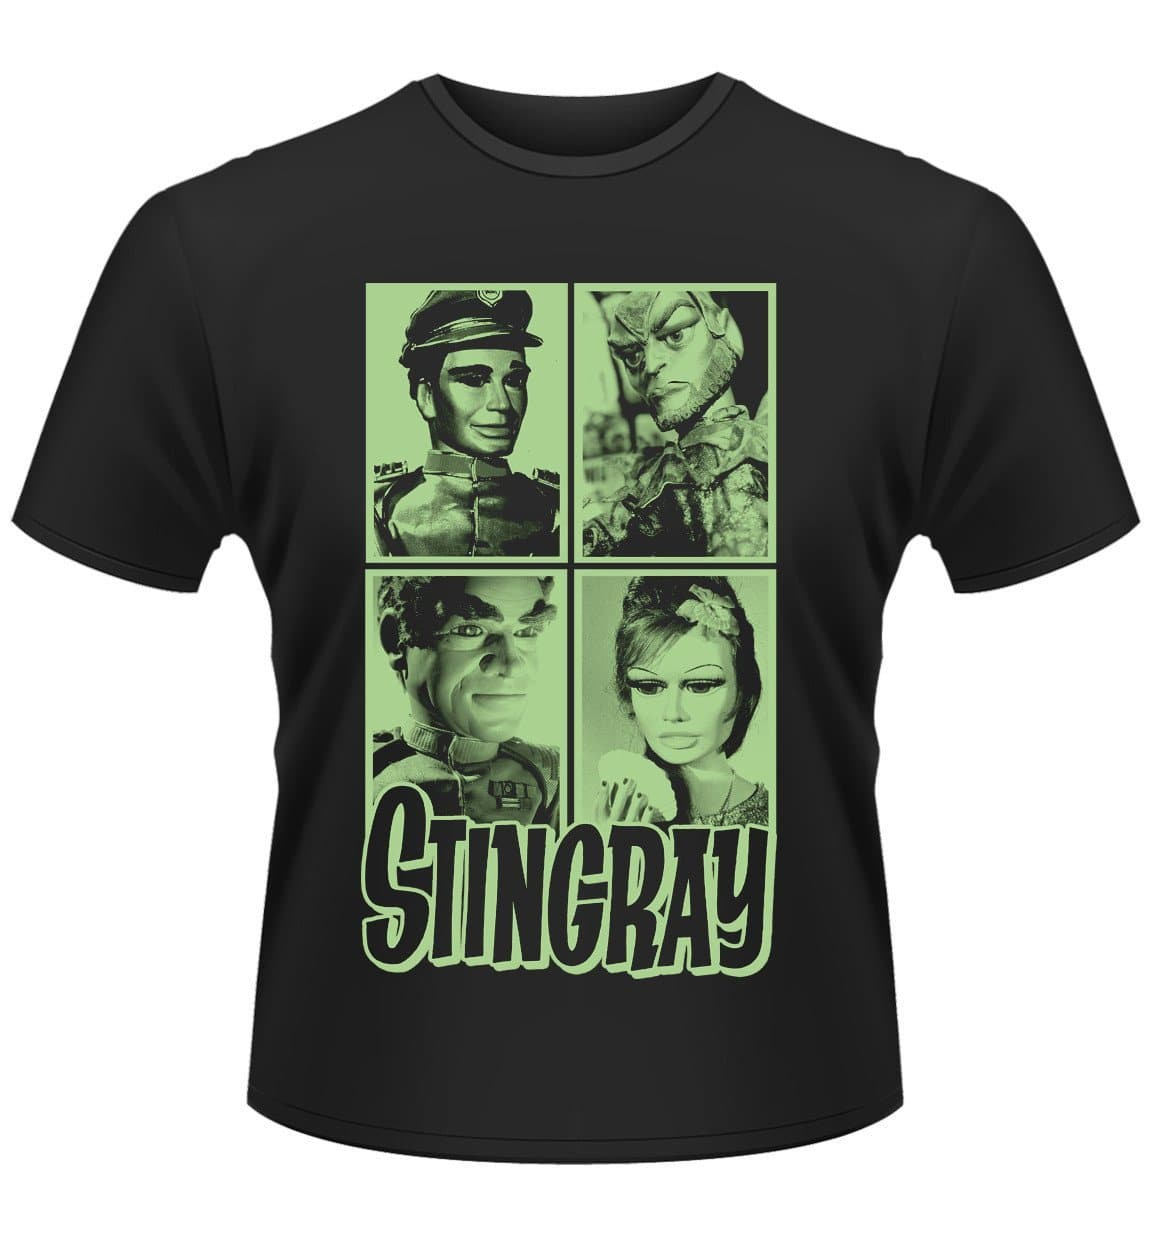 Stingray T-shirt featuring Troy, Titan, Marina, and Commander Shore - The Gerry Anderson Store